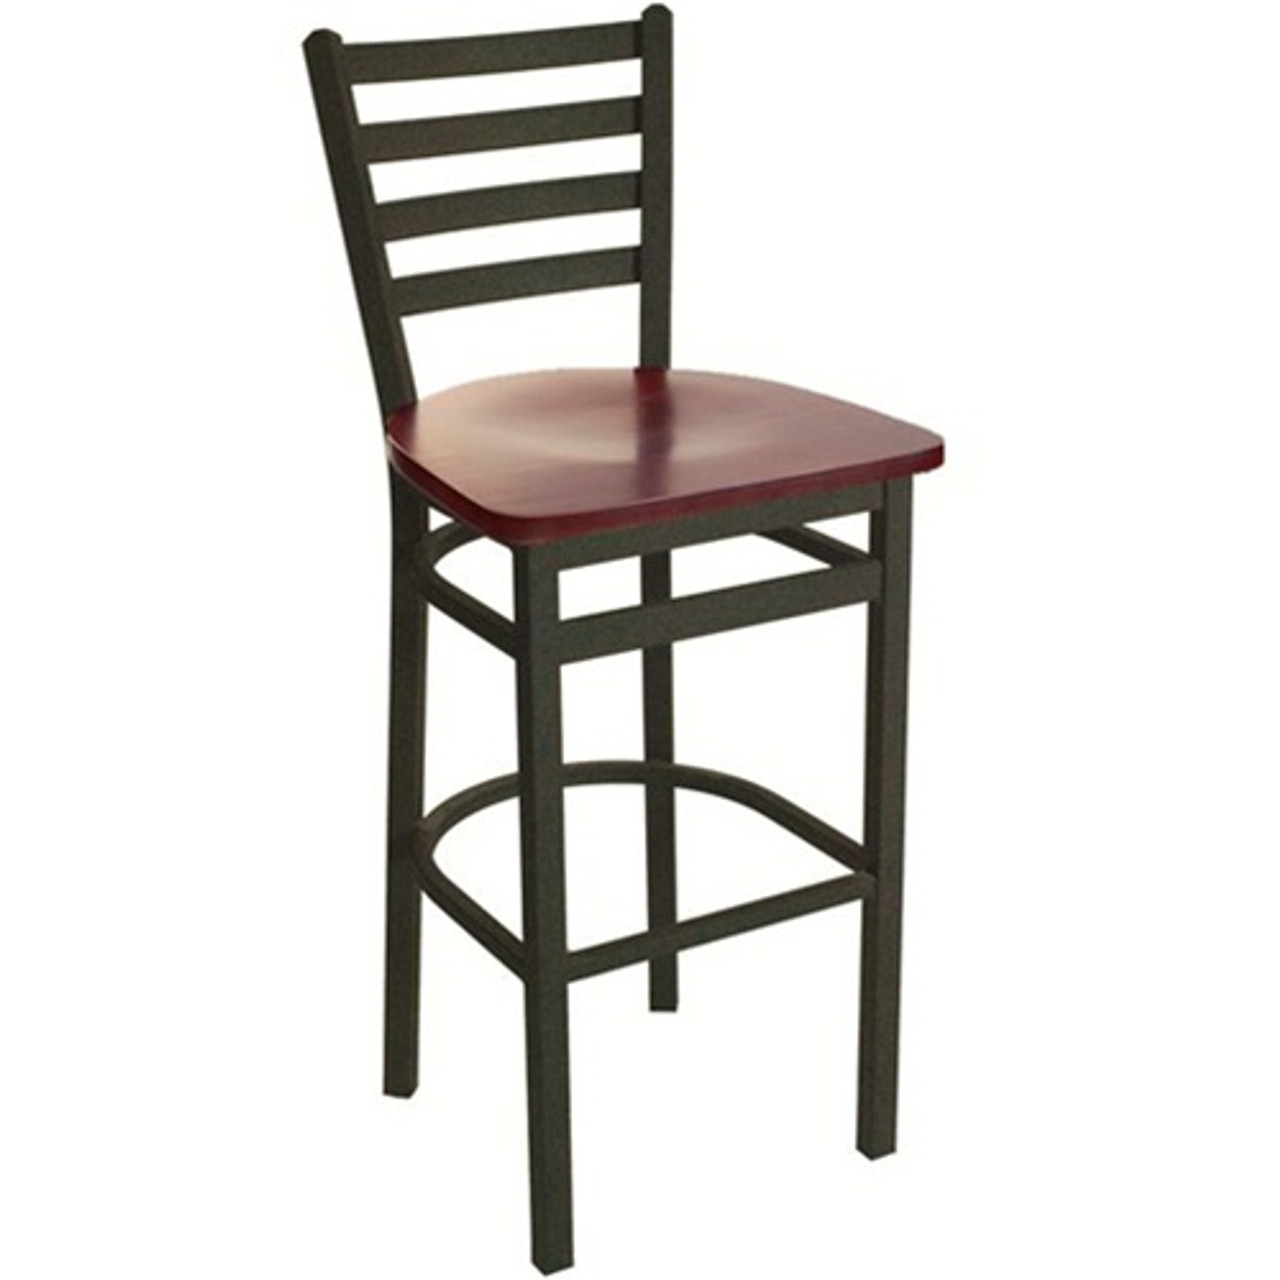 Admirable Bfm Seating Lima Black Metal Ladder Back Restaurant Bar Stool With Wood Seat 2160B Sbw Forskolin Free Trial Chair Design Images Forskolin Free Trialorg